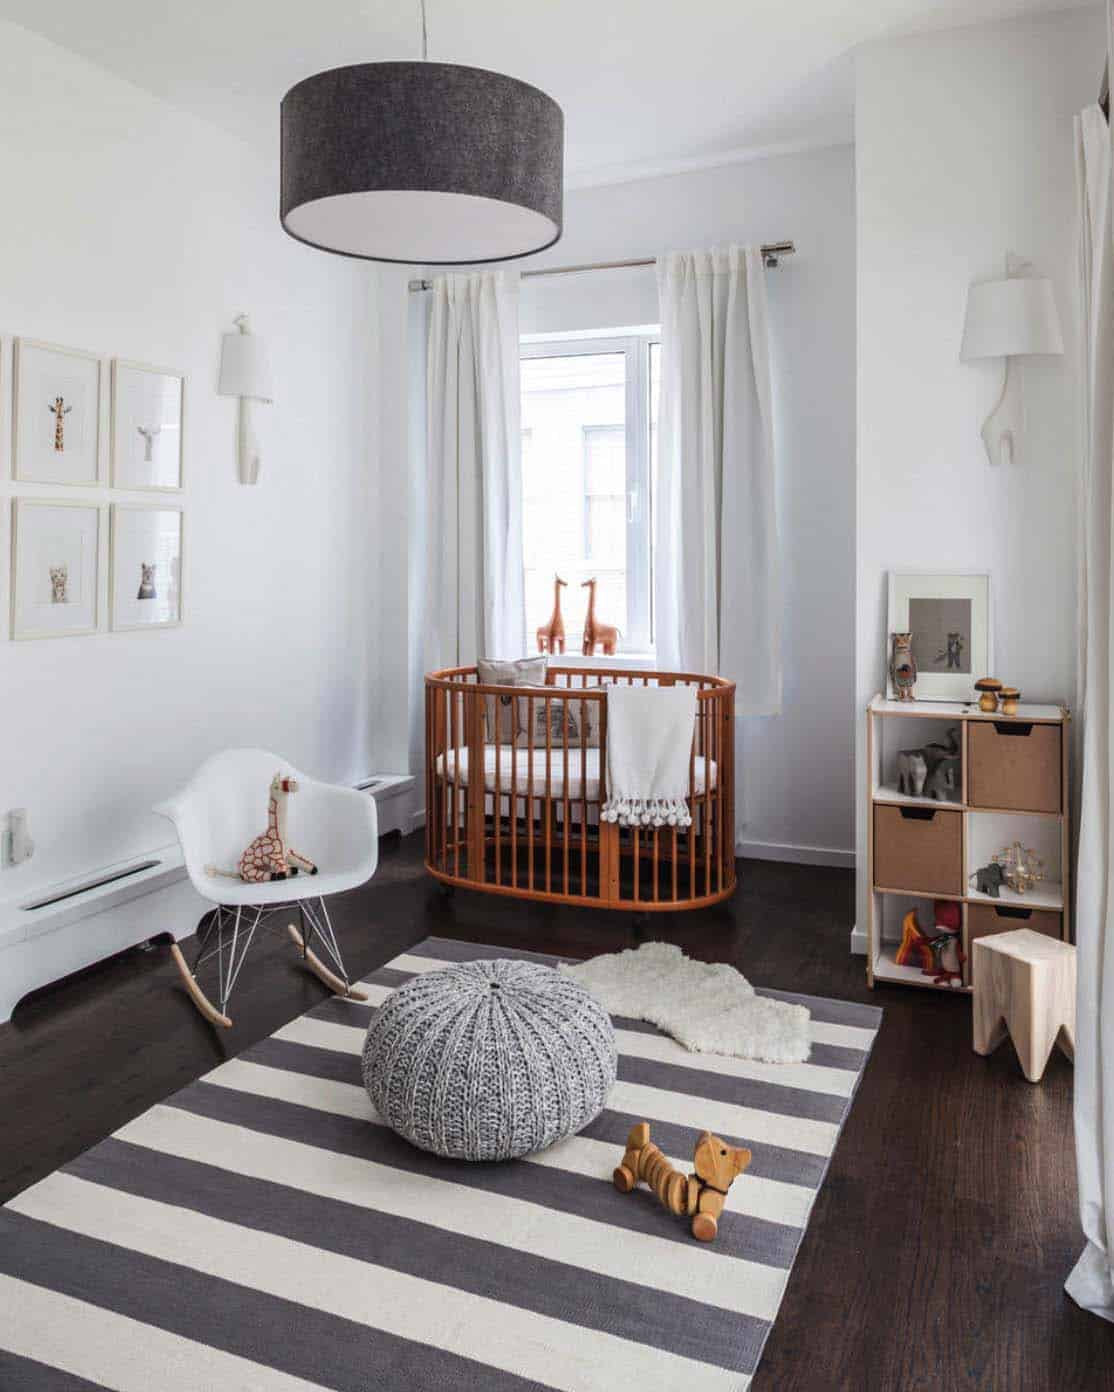 Stylish Nursery Decorating Ideas-08-1 Kindesign